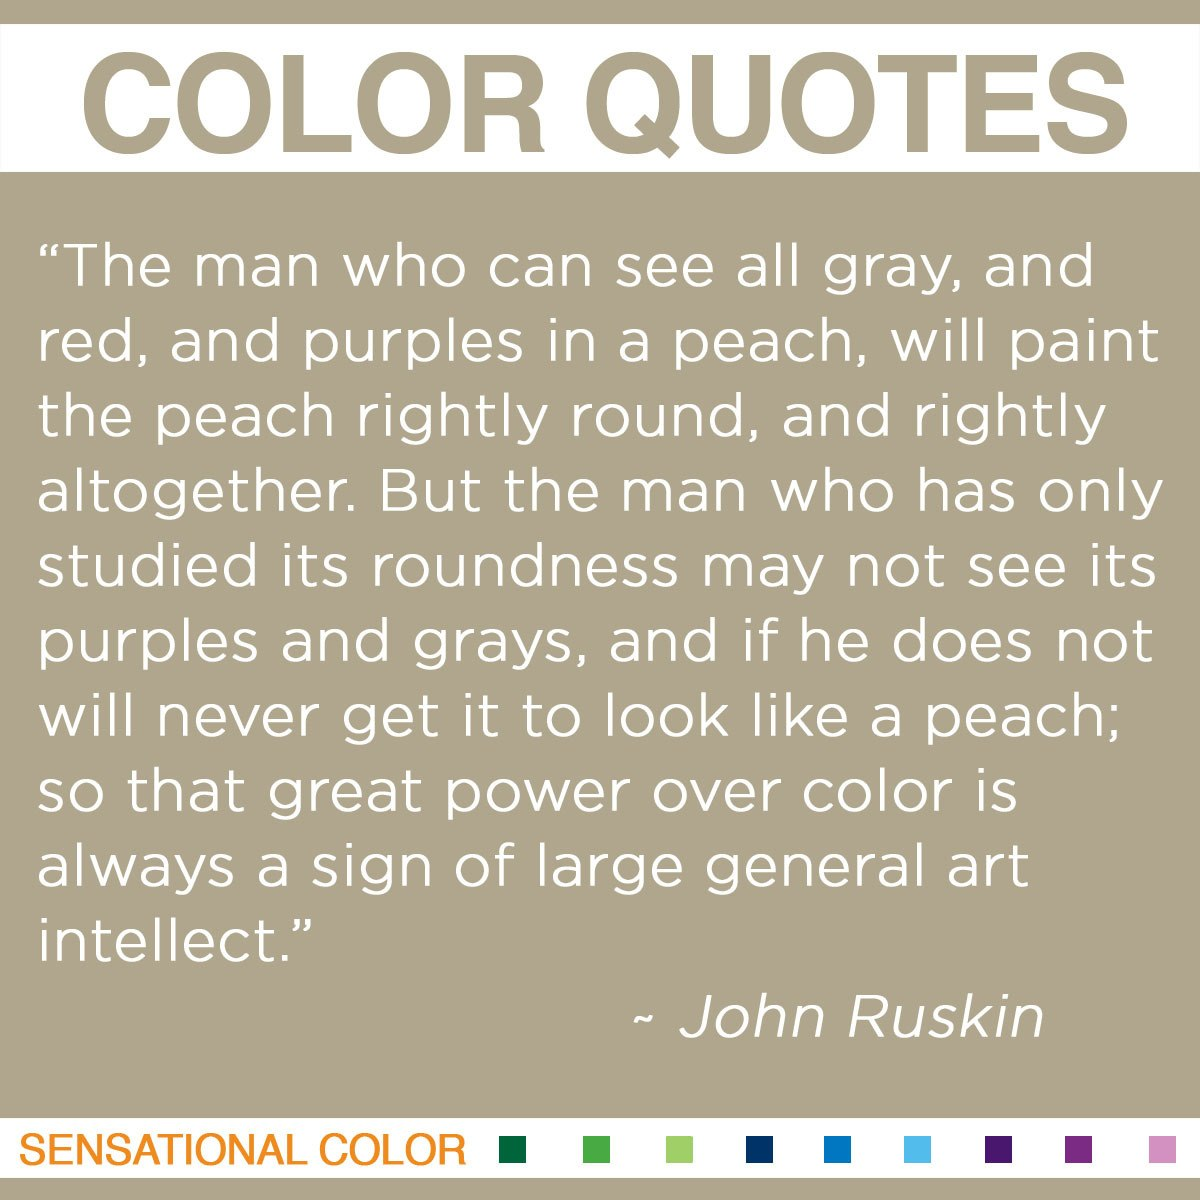 """The man who can see all gray, and red, and purples in a peach, will paint the peach rightly round, and rightly altogether. But the man who has only studied its roundness may not see its purples and grays, and if he does not will never get it to look like a peach; so that great power over color is always a sign of large general art-intellect."" - John Ruskin"